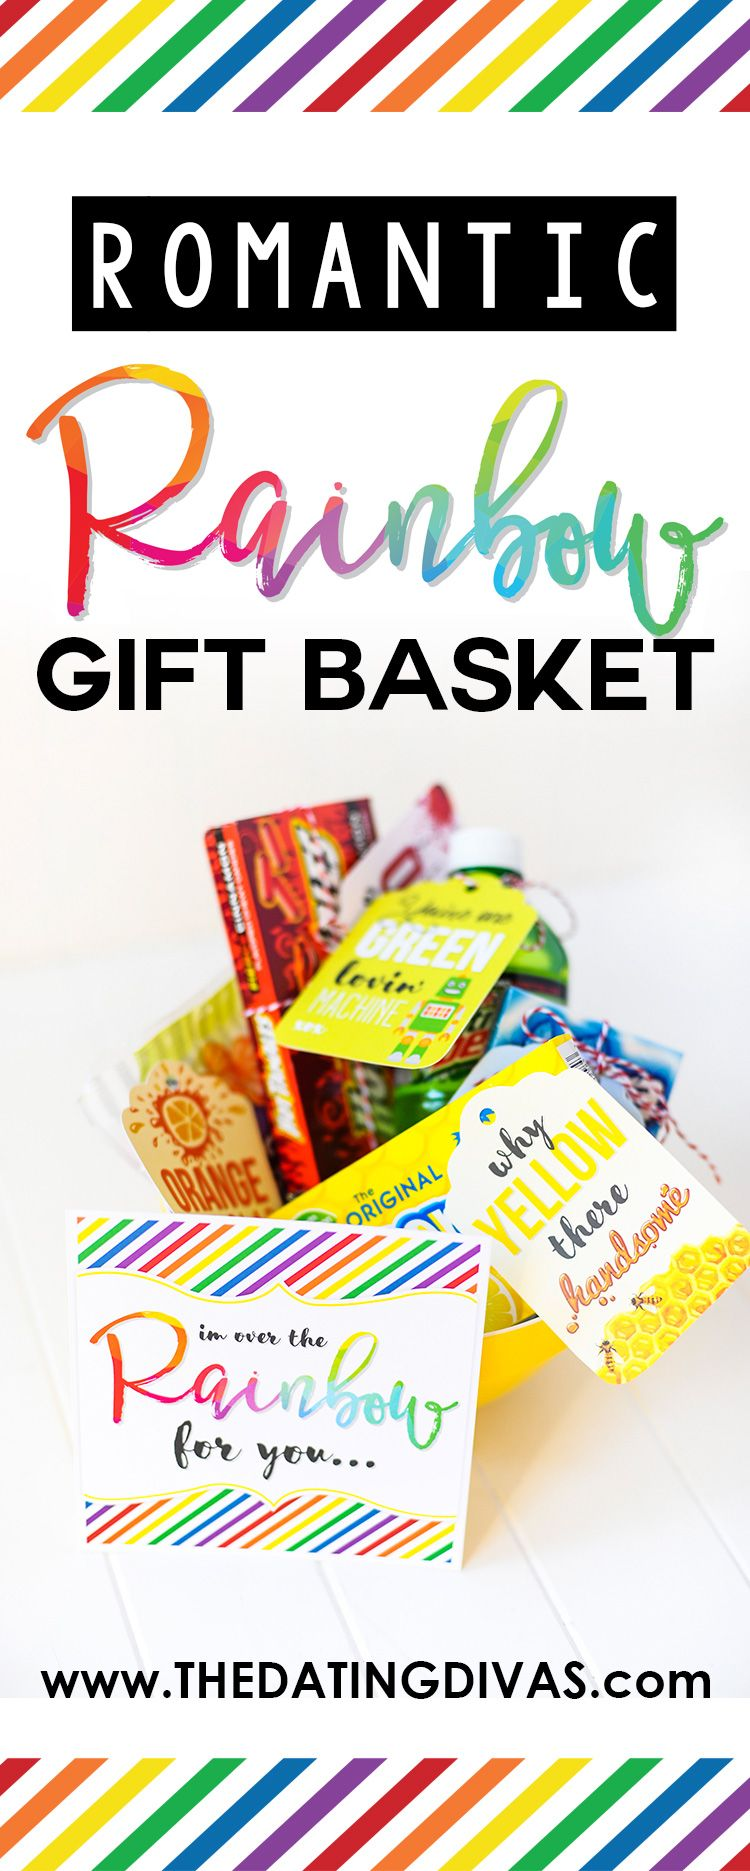 Romantic rainbow gift basket free printable gift tags rainbows free printable gift tags to make your own romantic rainbow gift basket the perfect gift negle Gallery